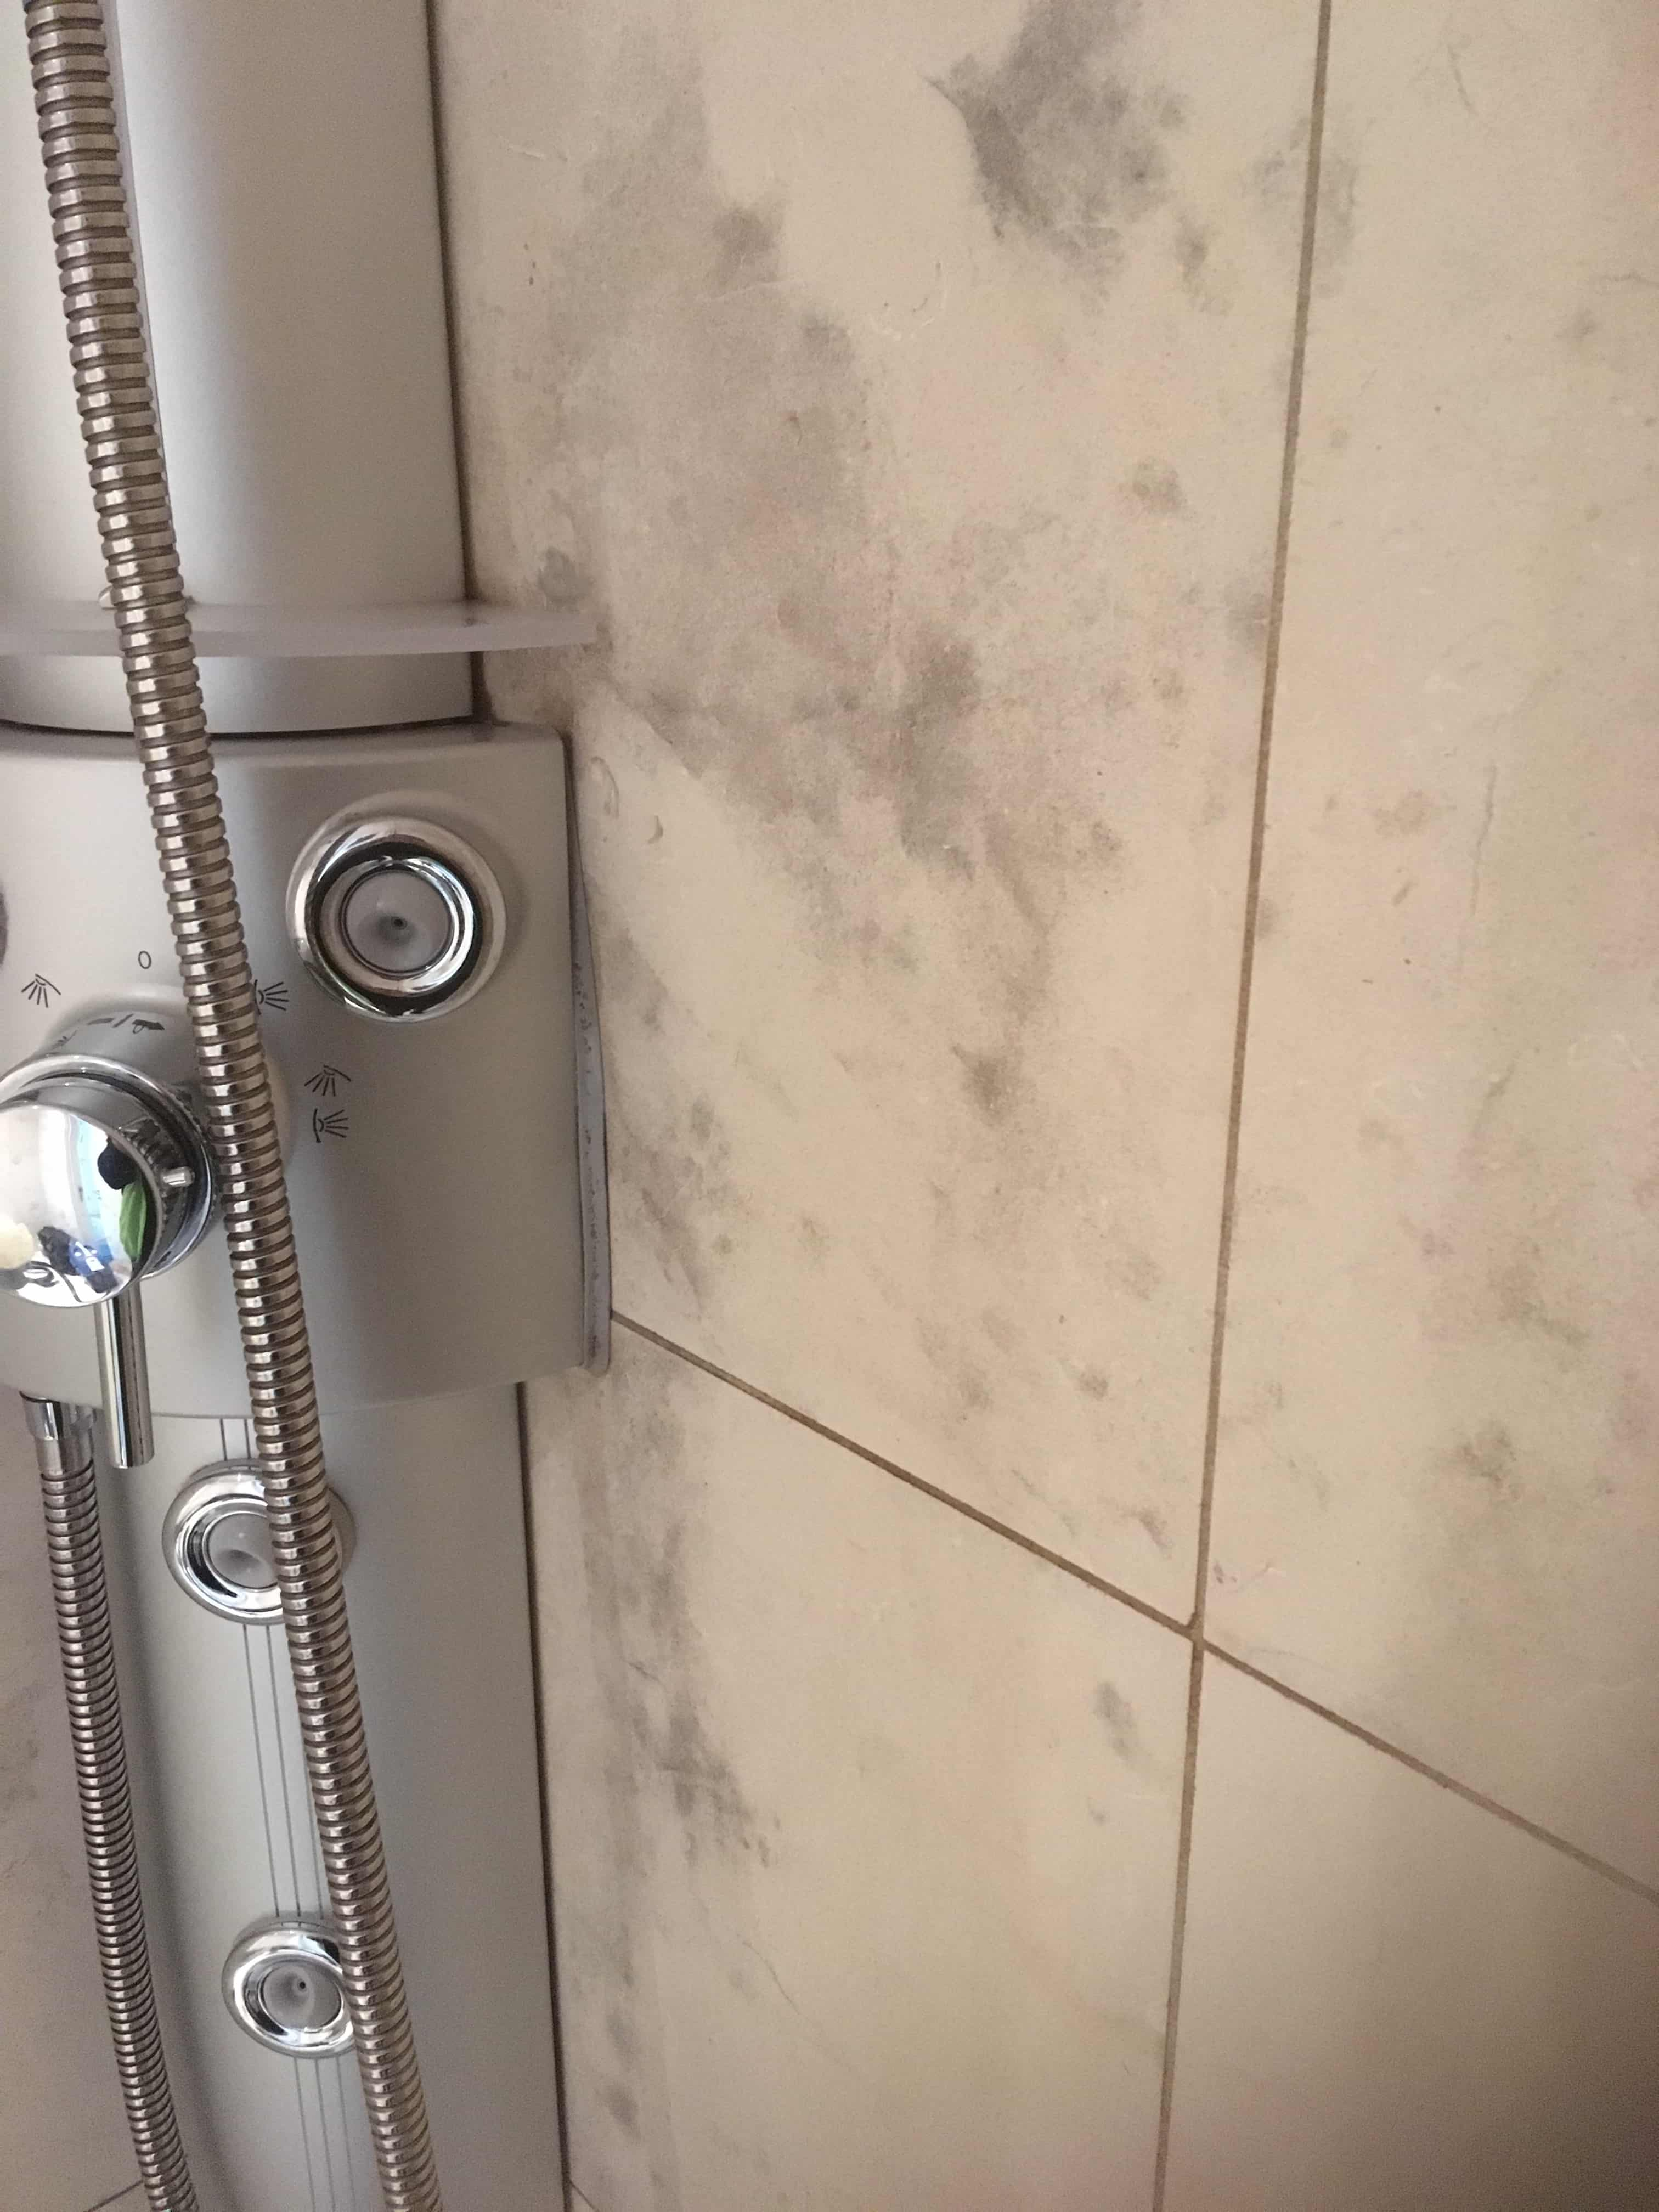 Limestone Tiled Shower Cubicle Before Mould Removal Manchester City Centre